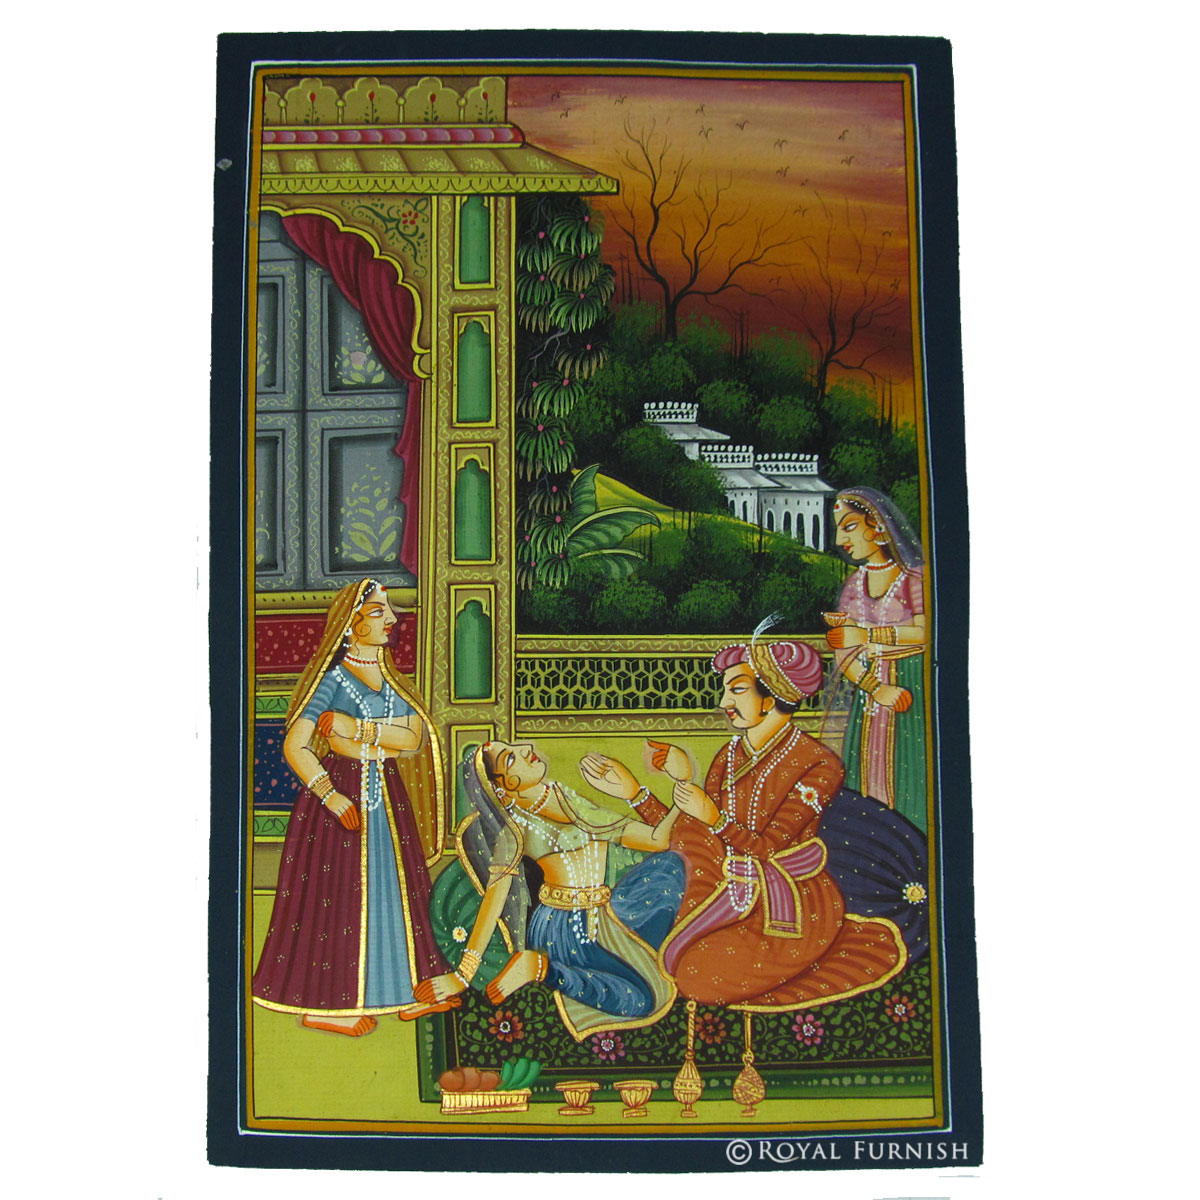 Mughal king love scene rajasthani miniature painting on silk fabric Home decor paintings for sale india